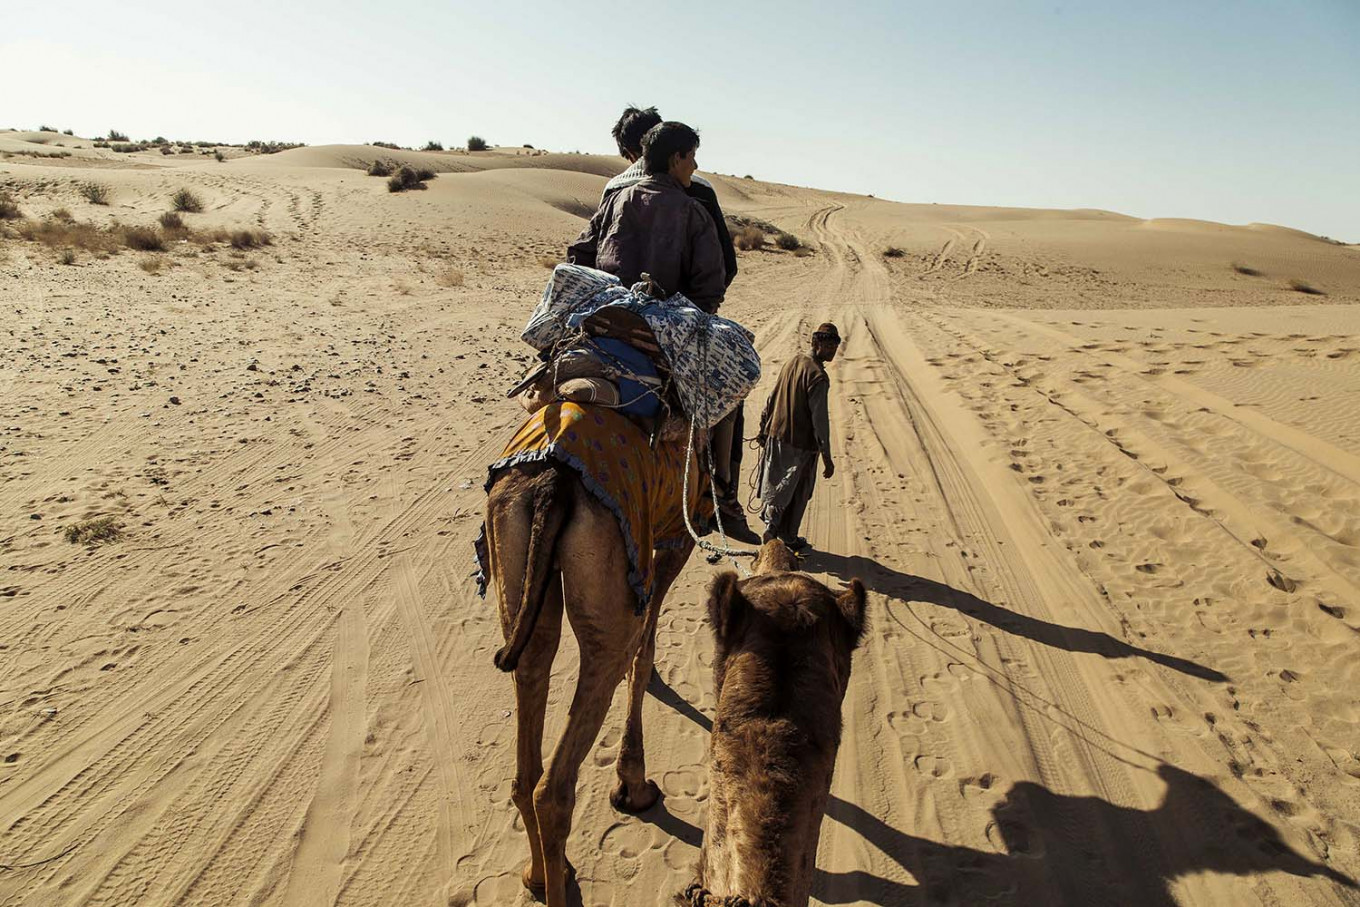 A safari tour is led through the wilderness of the Thar Desert. JP/Irene Barlian